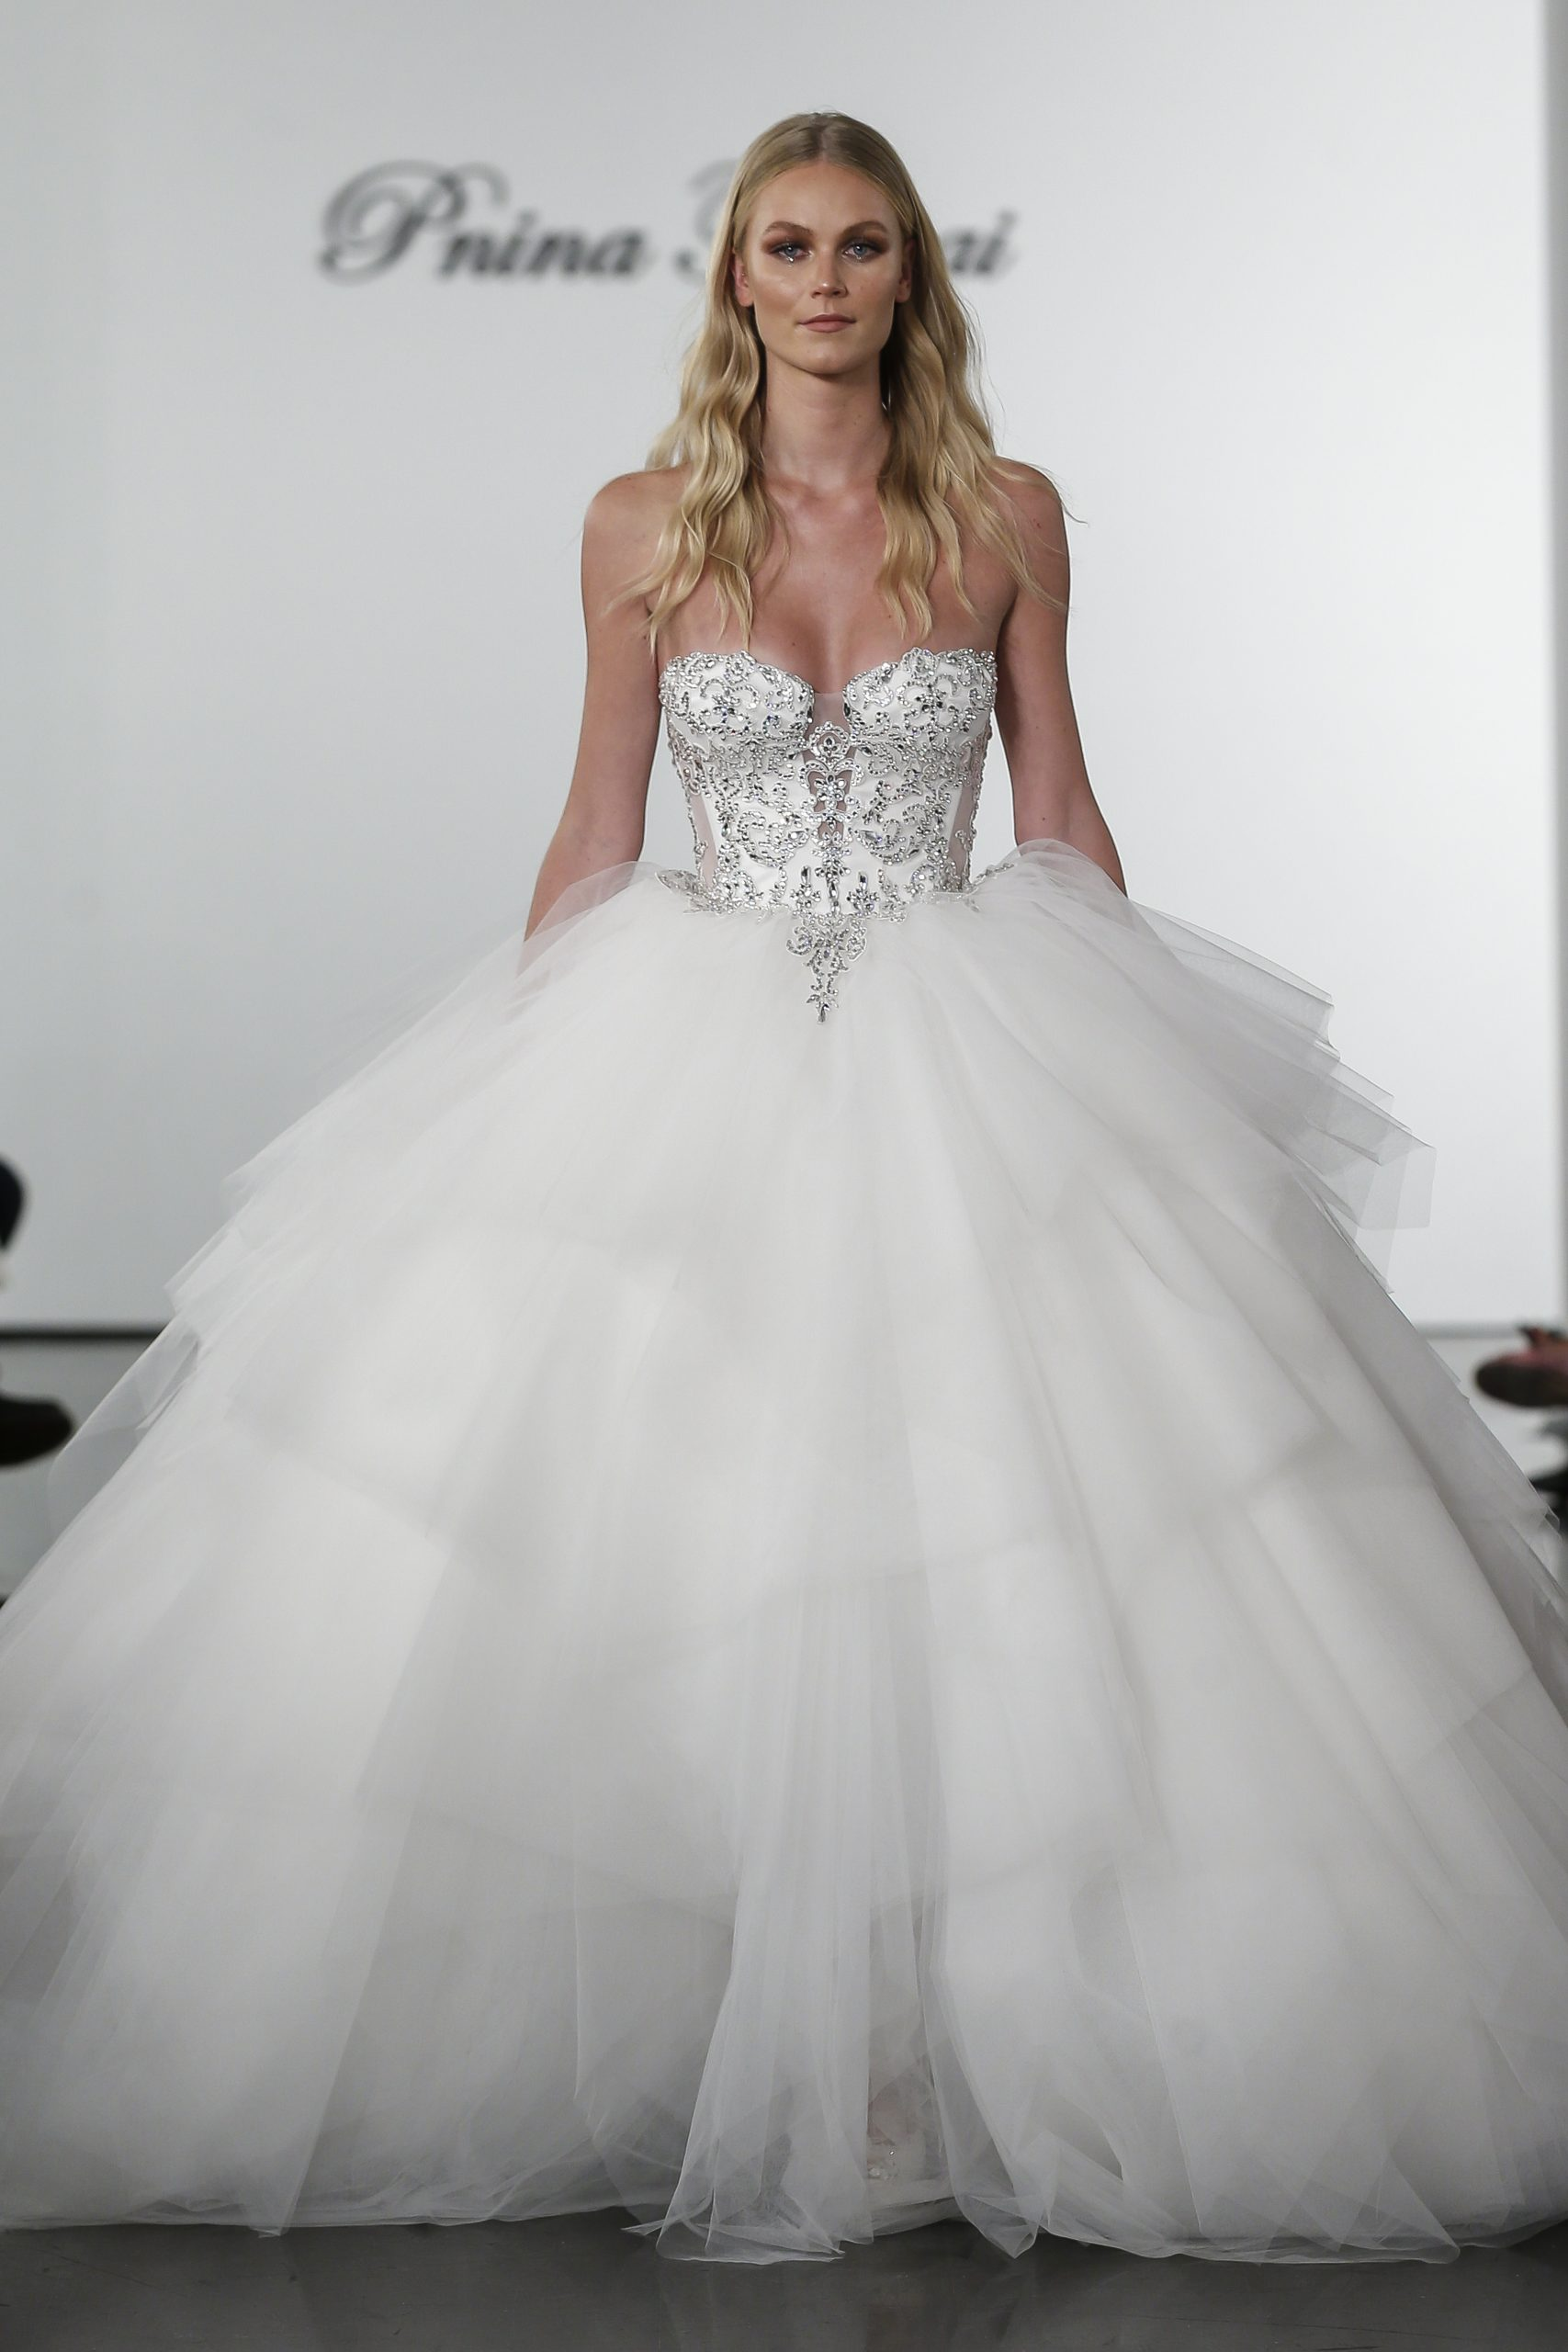 Layered Tulle Ball Gown Wedding Dress With Crystal Embellished Corset Bodice Kleinfeld Bridal